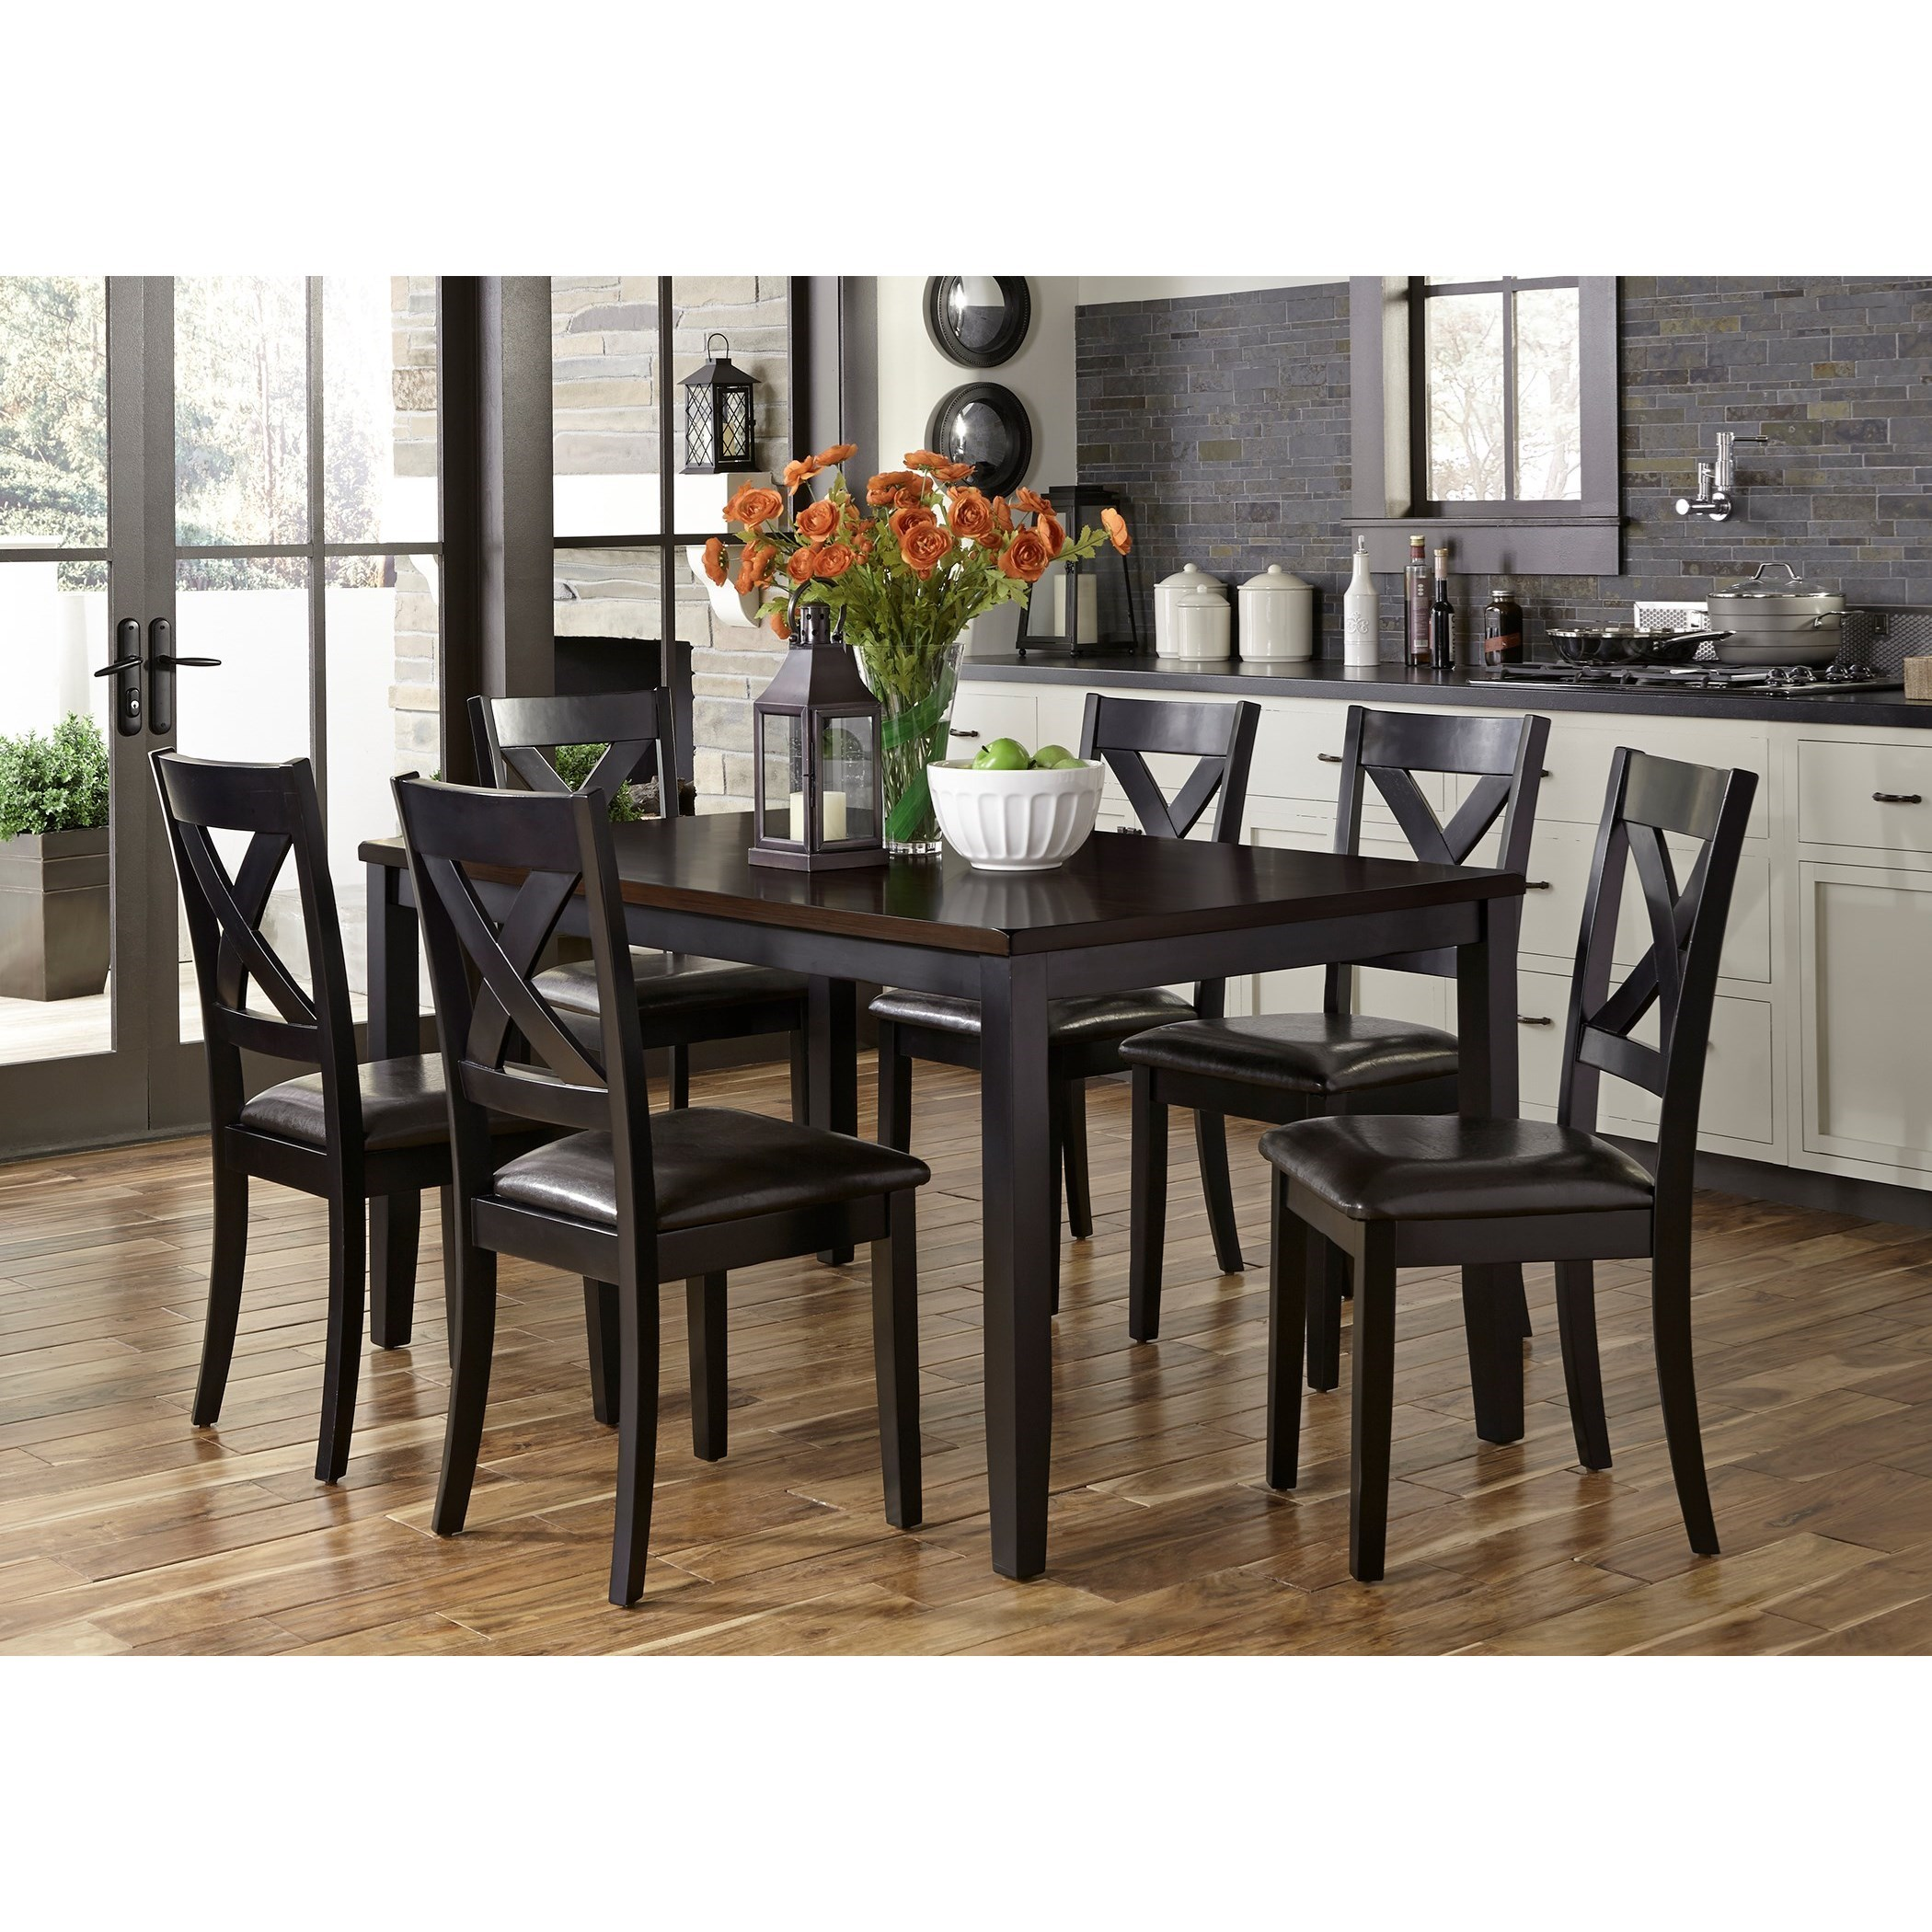 Thornton 7 Piece Rectangular Table Set by Liberty Furniture at Northeast Factory Direct